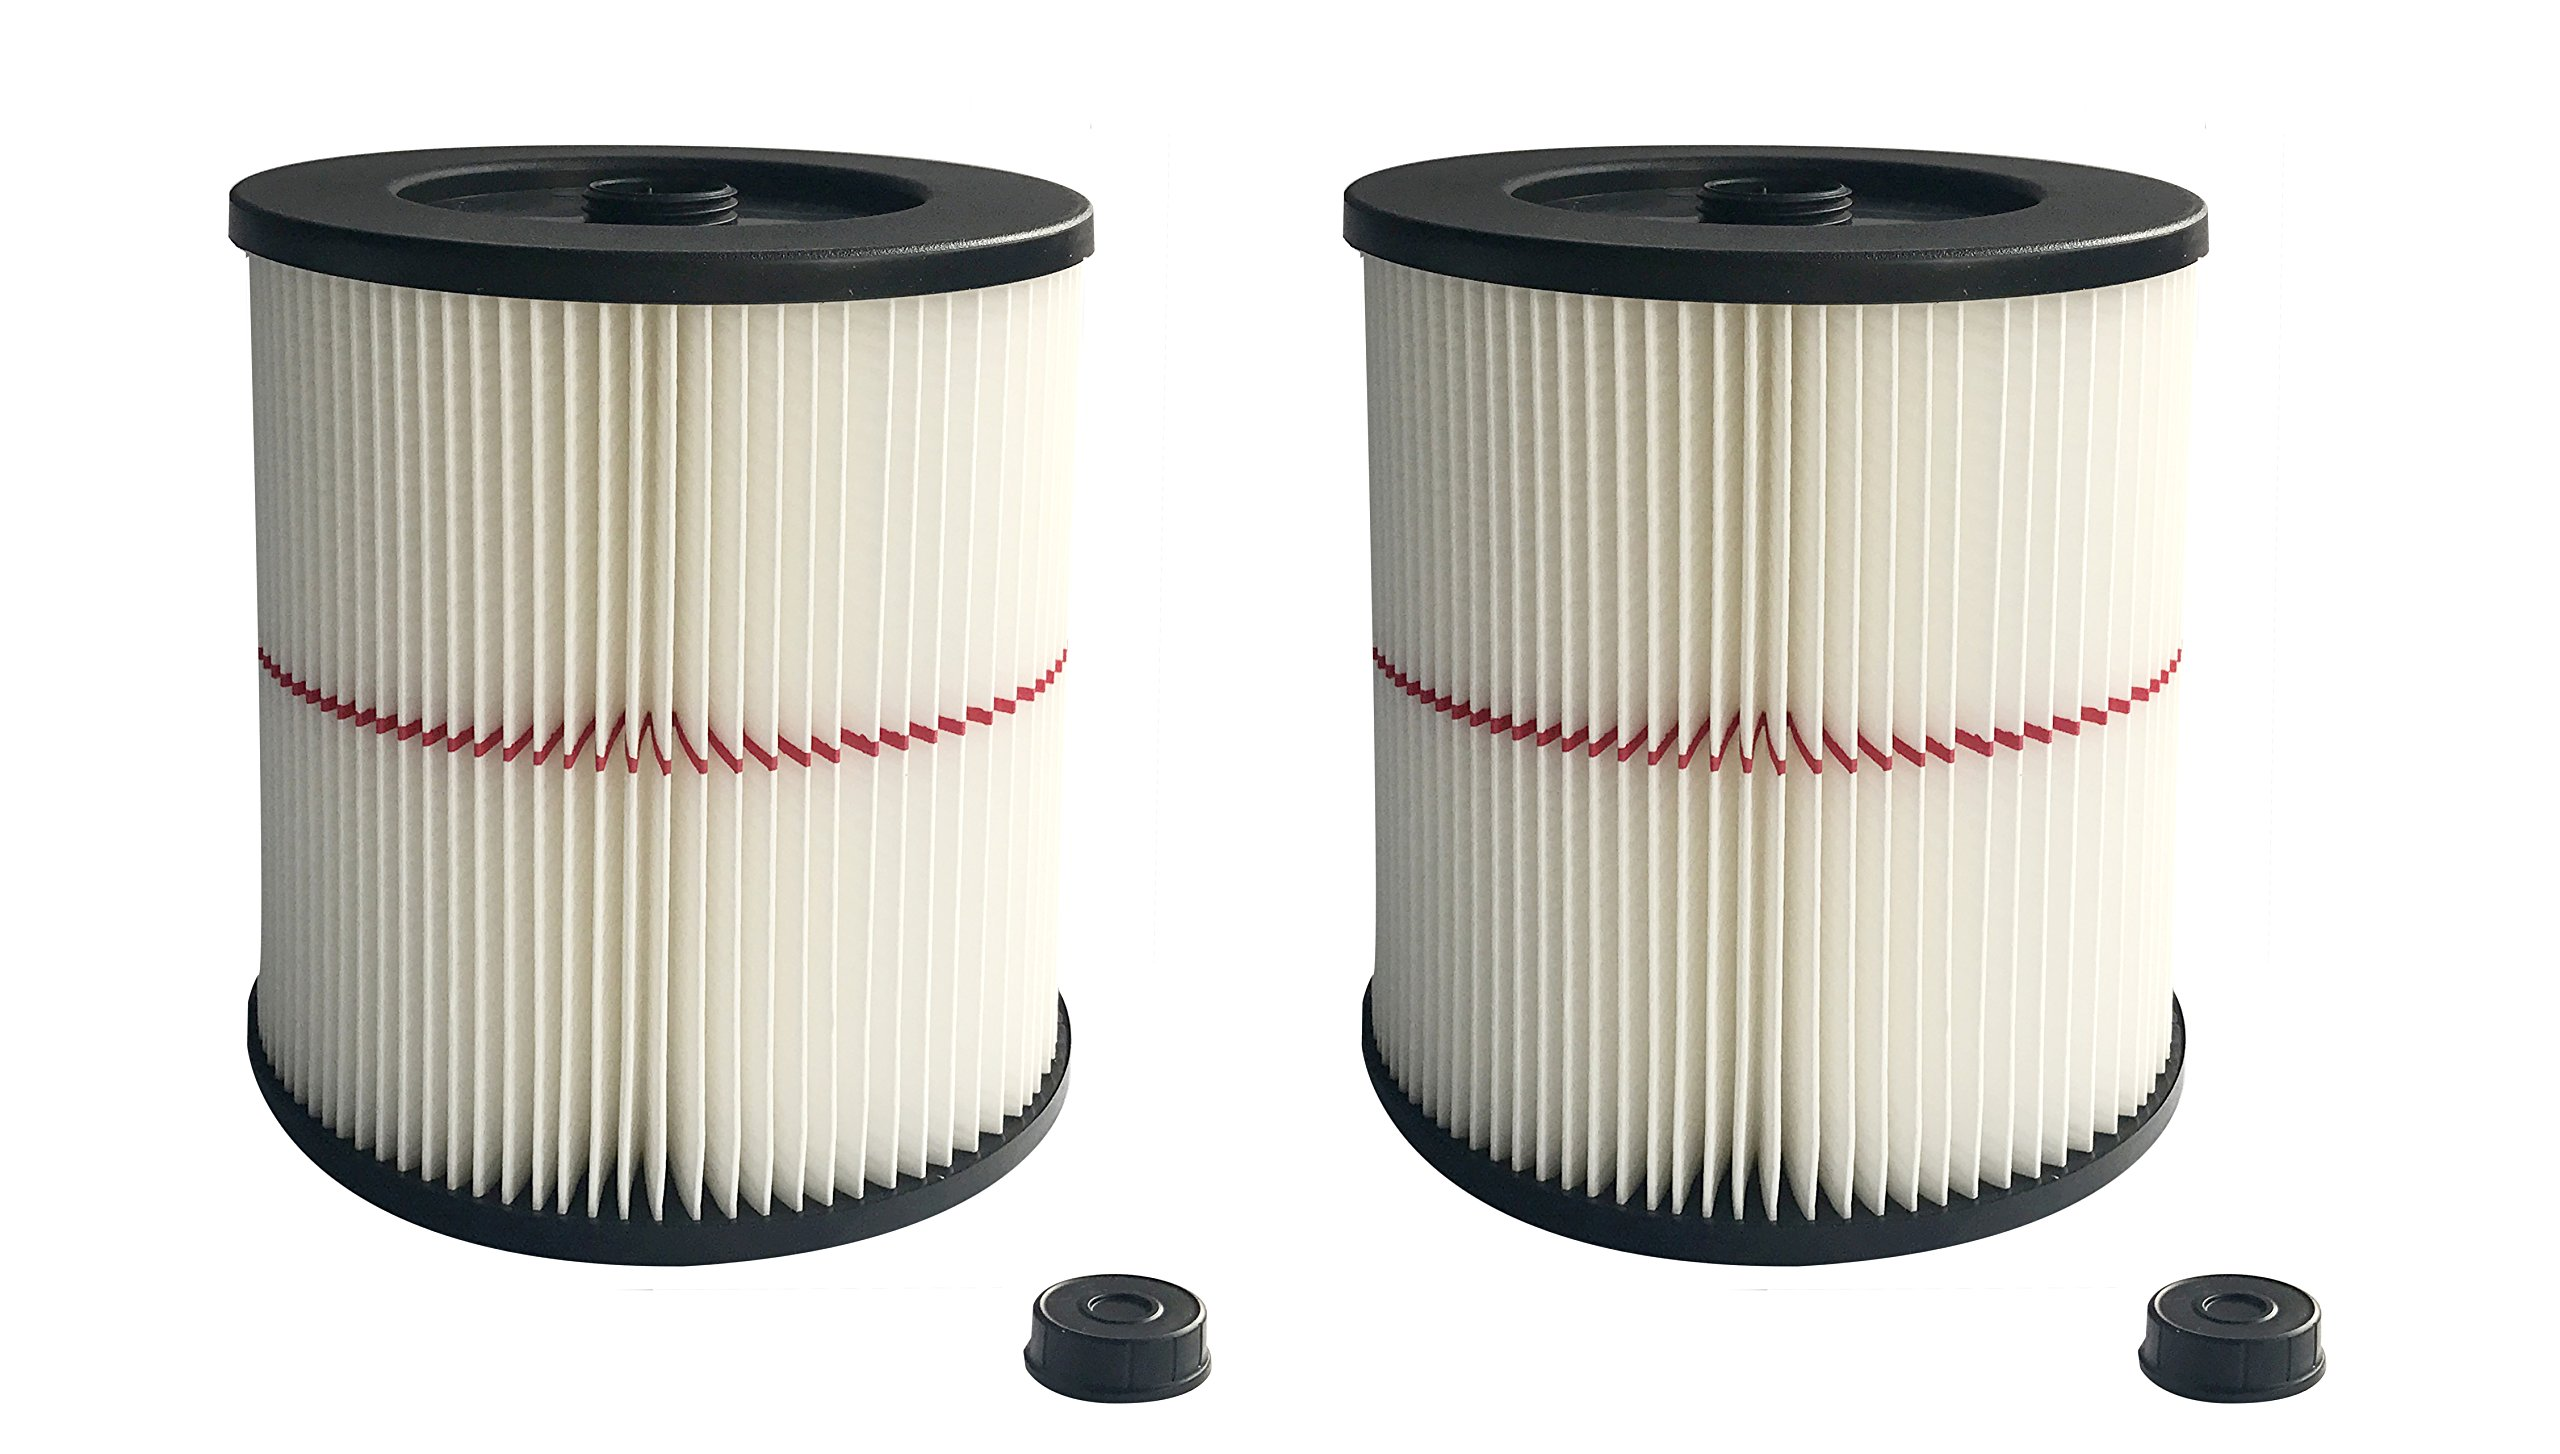 ATXKXE Vacuum Cleaner Air Cartridge Filter for Craftsman 17816 Filter (2 Pack) by ATXKXE